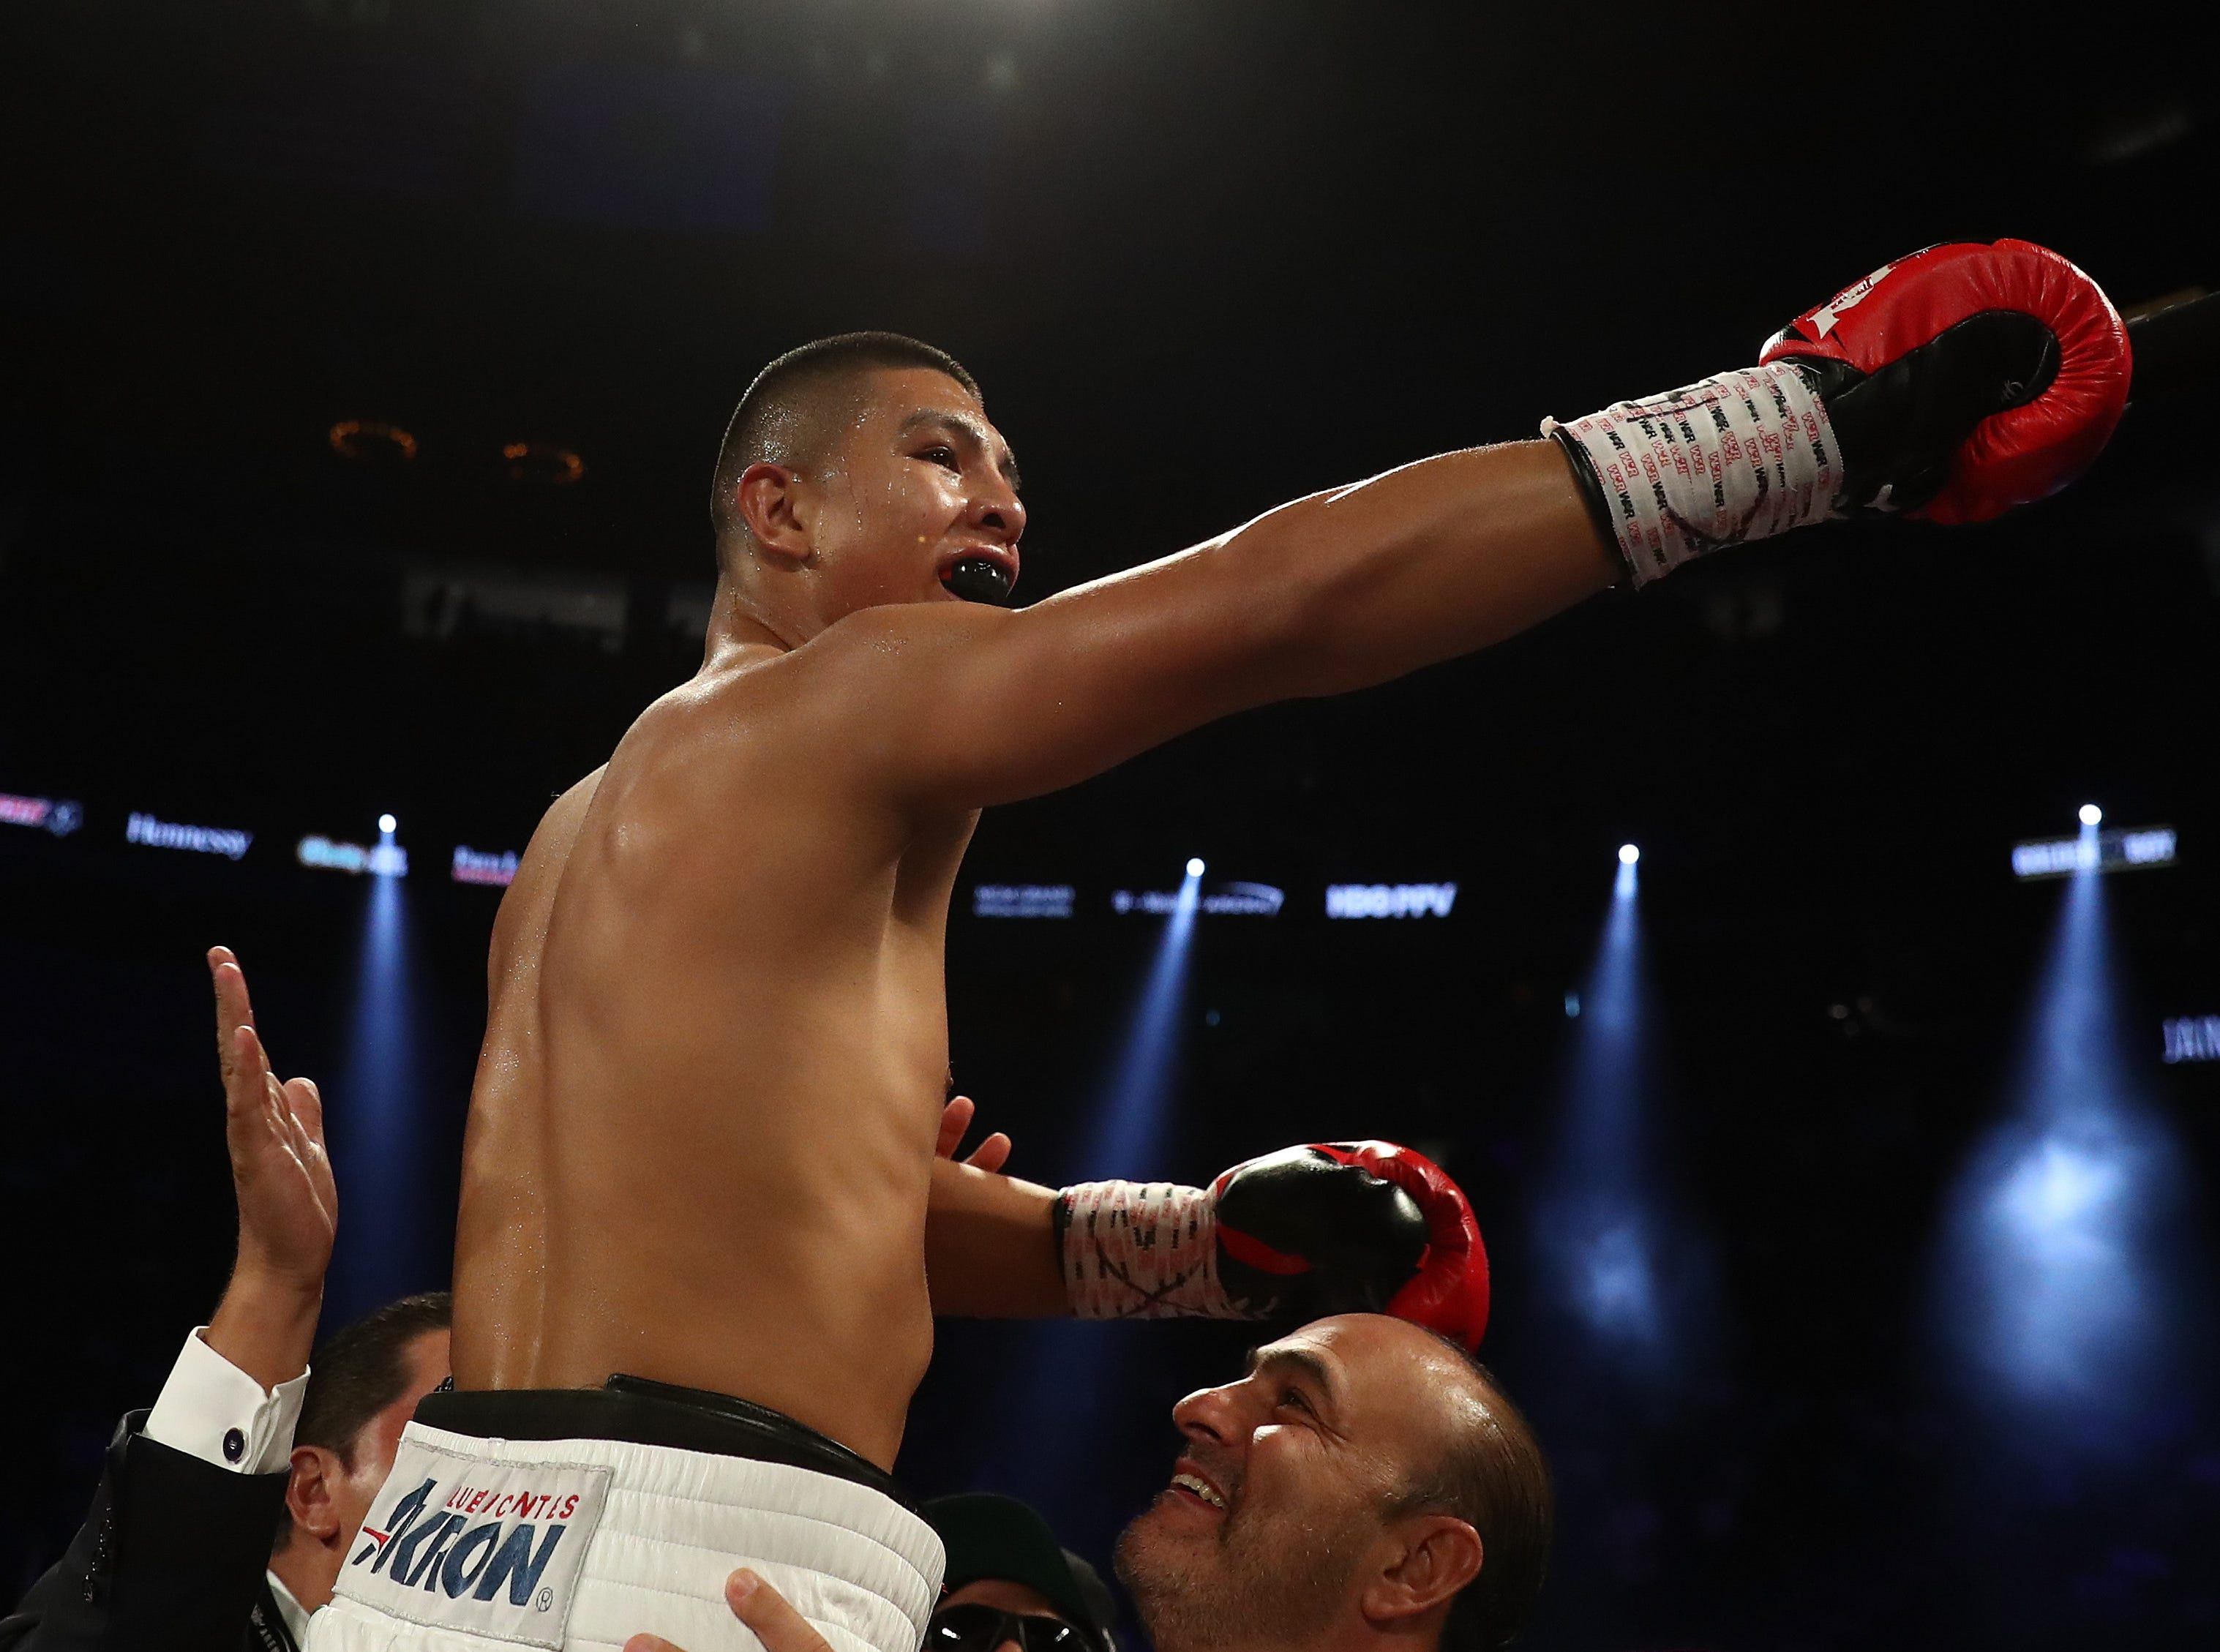 LAS VEGAS, NV - SEPTEMBER 15:  Jaime Munguia celebrates his tgird round TKO against Brandon Cook during their WBO junior middleweight title fight  at T-Mobile Arena on September 15, 2018 in Las Vegas, Nevada.  (Photo by Al Bello/Getty Images)